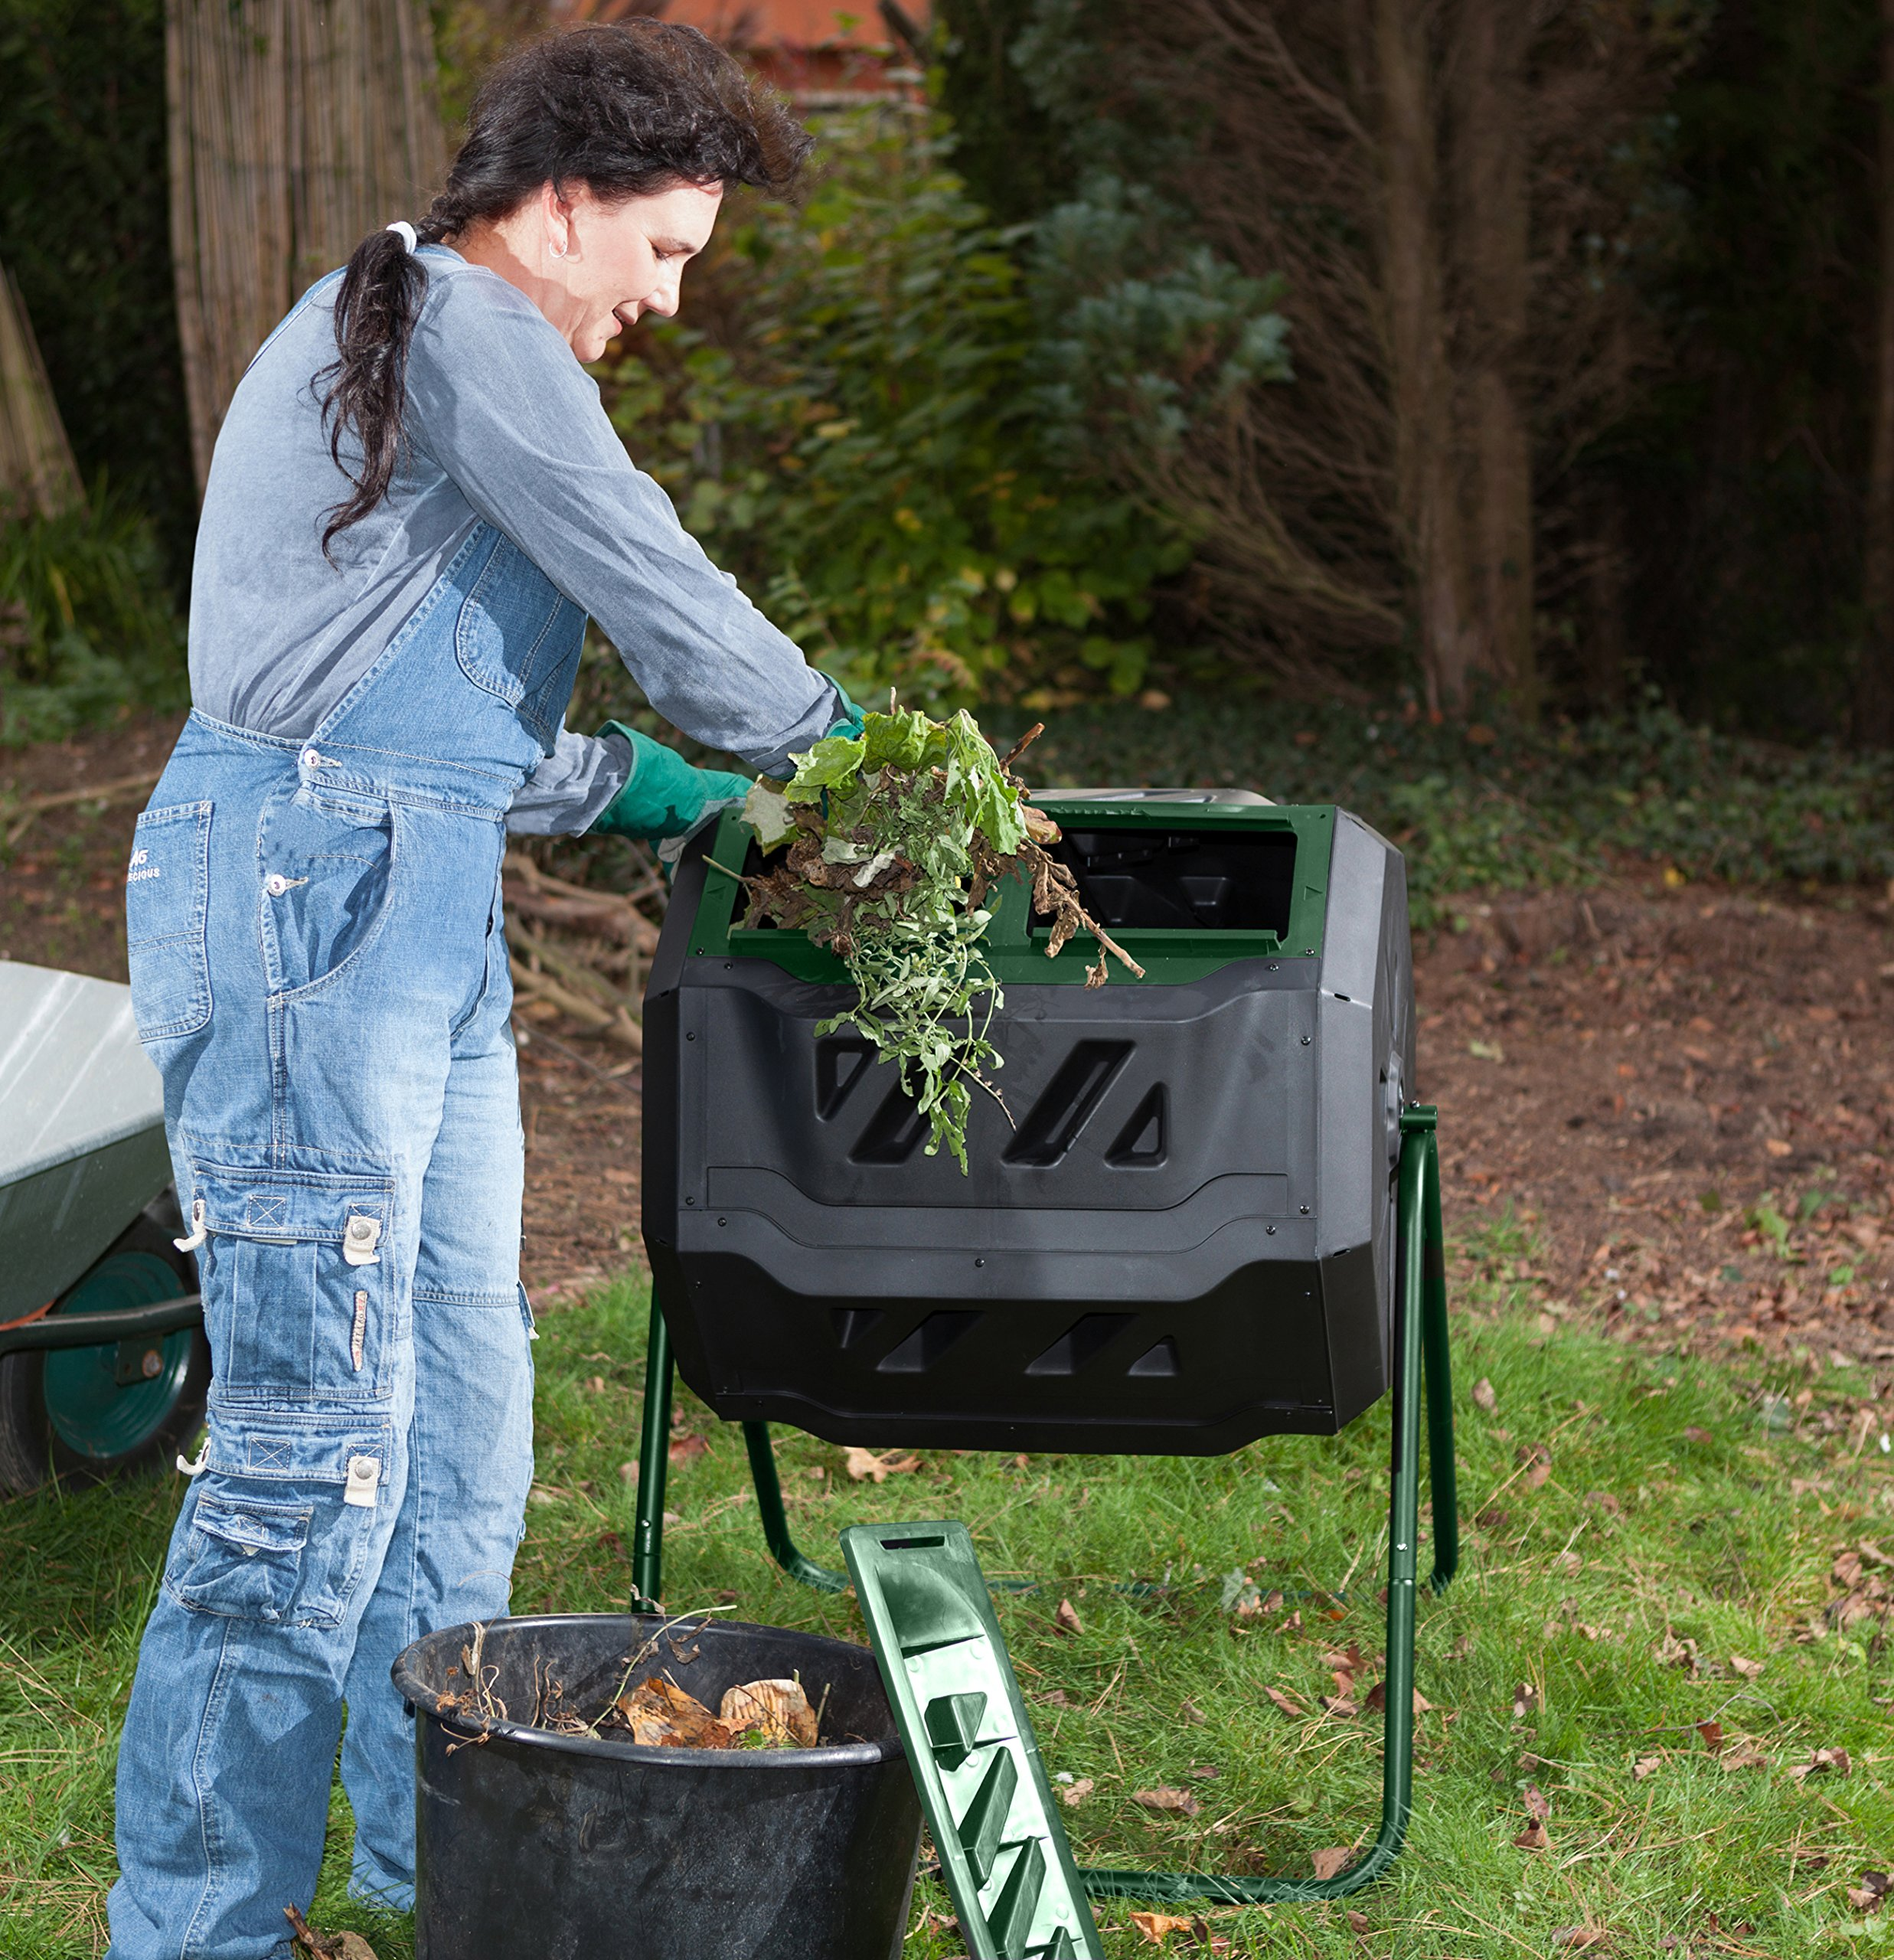 Exaco Trading Company Exaco Mr.Spin Compost Tumbler - 160 Liters / 43 Gallon, Dual Chamber Composter On Two-Leg Stand by Exaco Trading Company (Image #2)